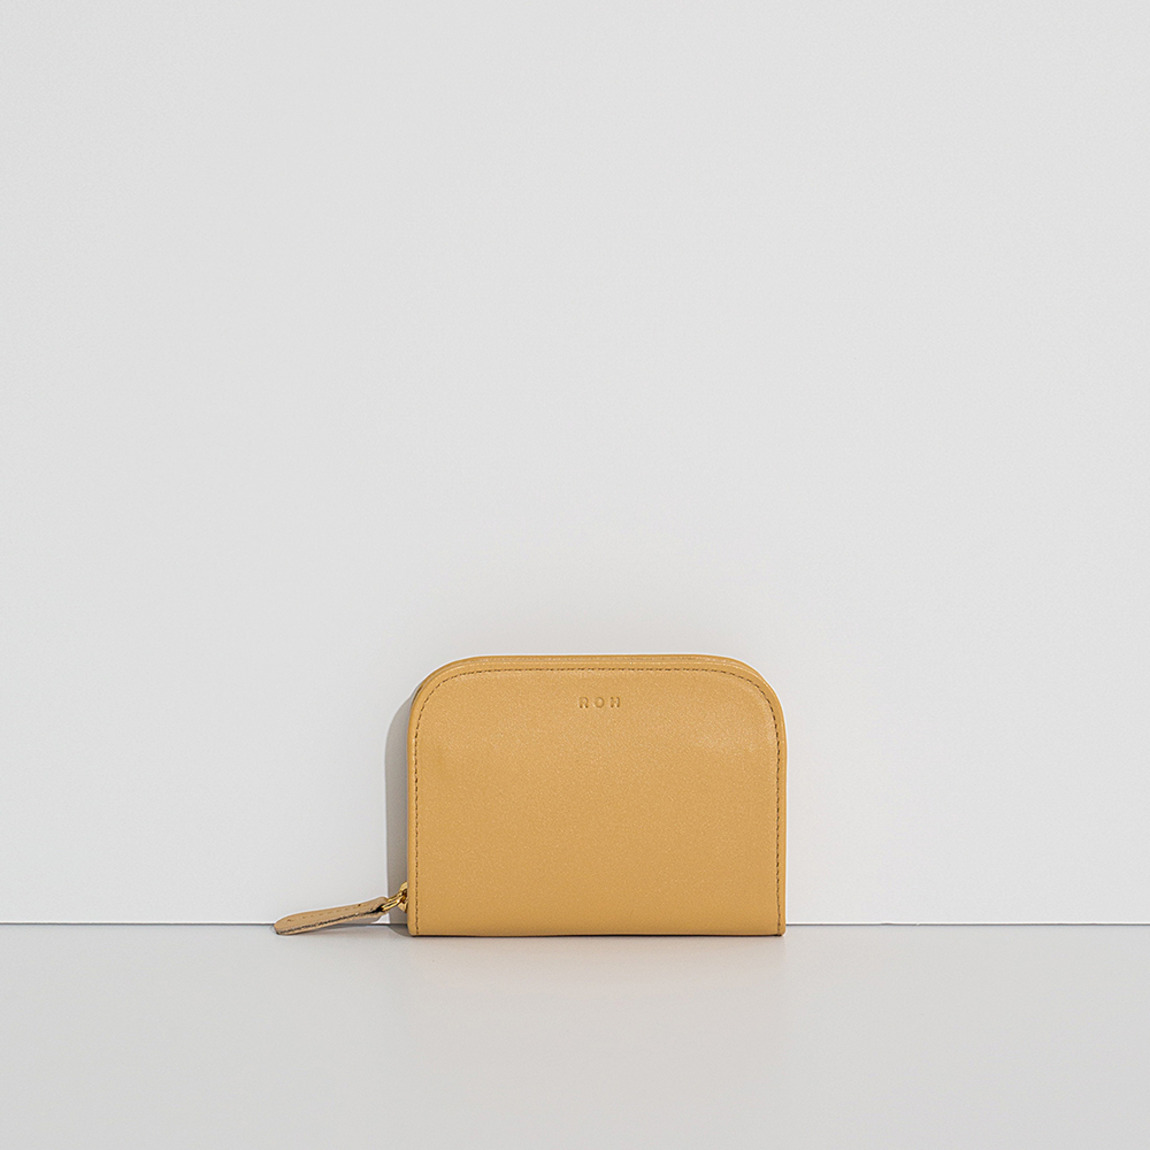 Half Wallet Objet 2 Yellow